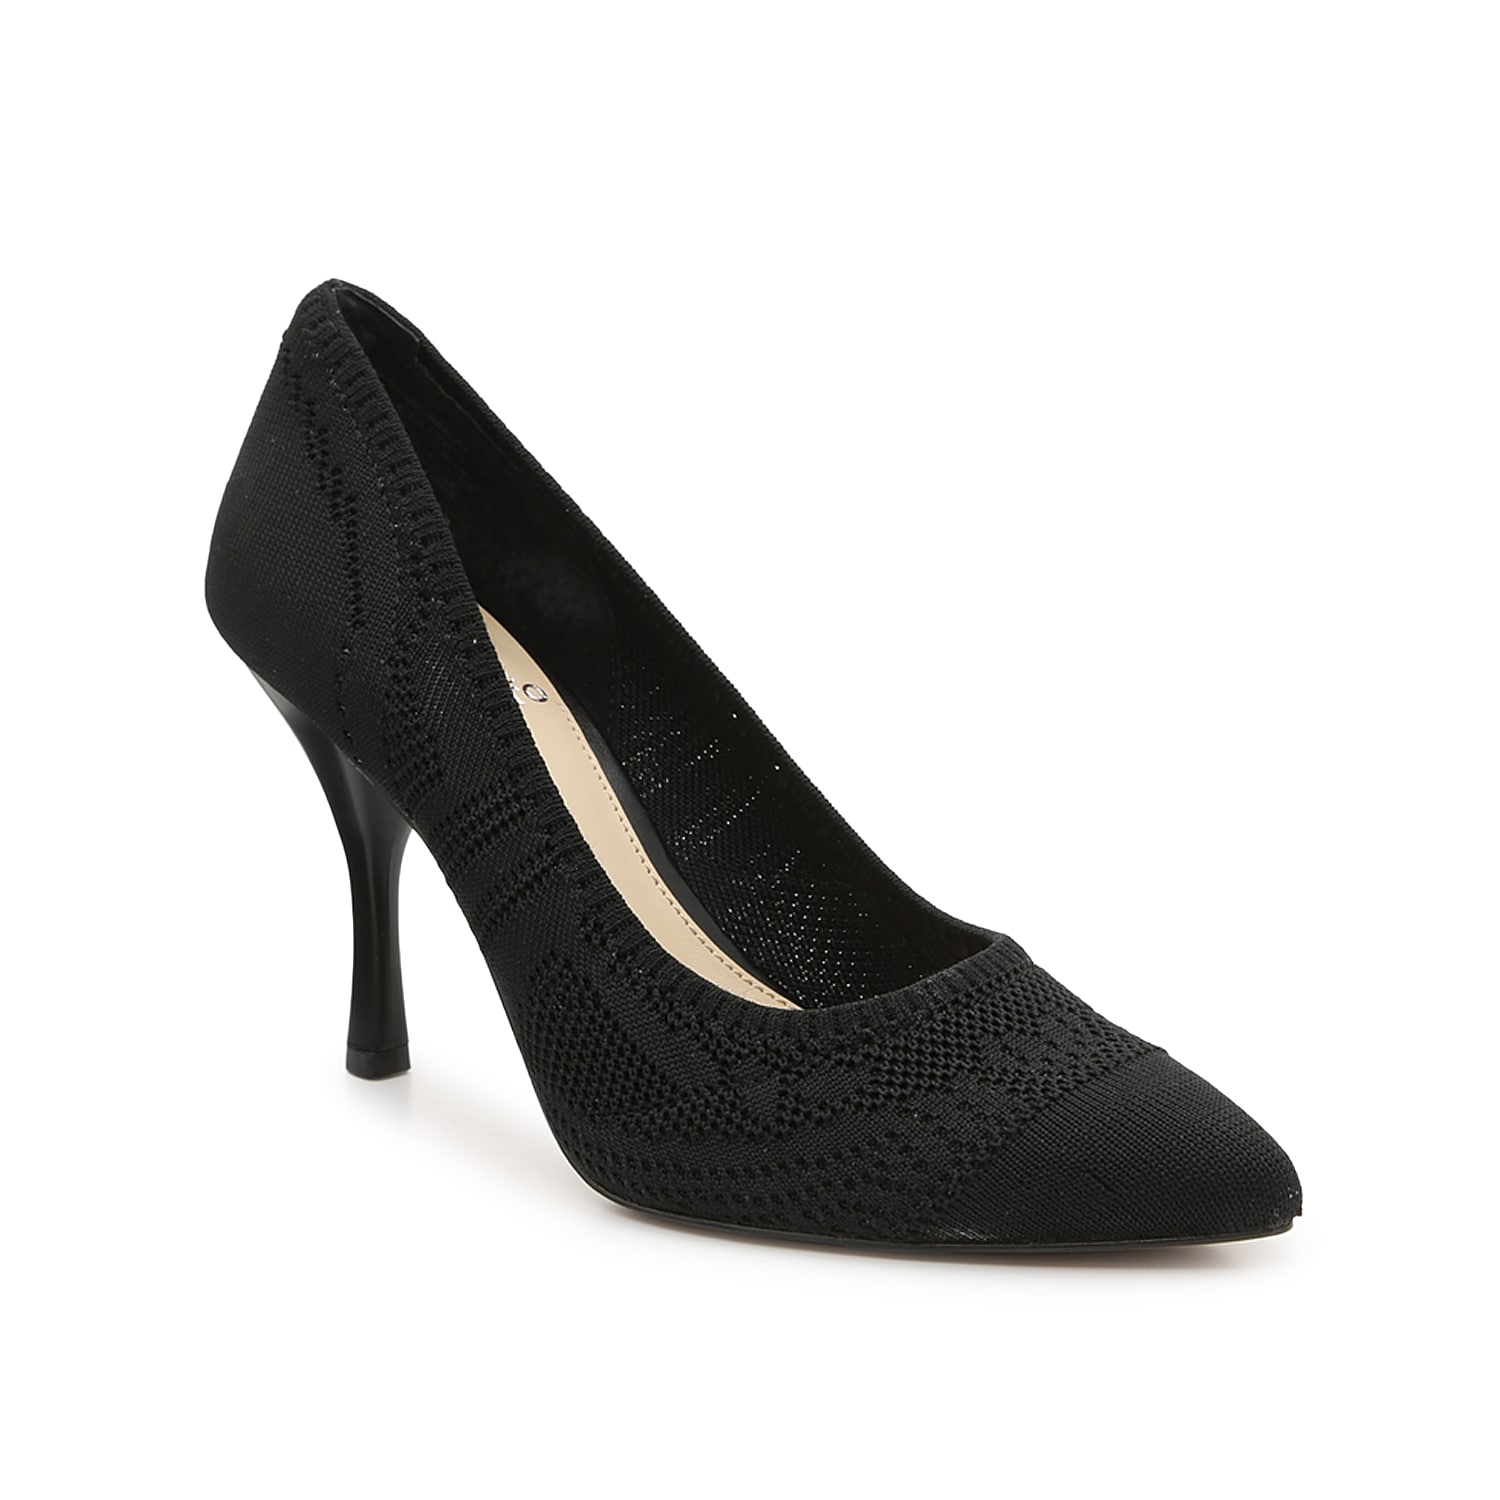 Reach new heights while wearing the Aparla pump from Vince Camuto. This classic silhouette is fashioned with a knit-fabric upper and a dynamic heel that elegantly curves upward into a unique cone shape!